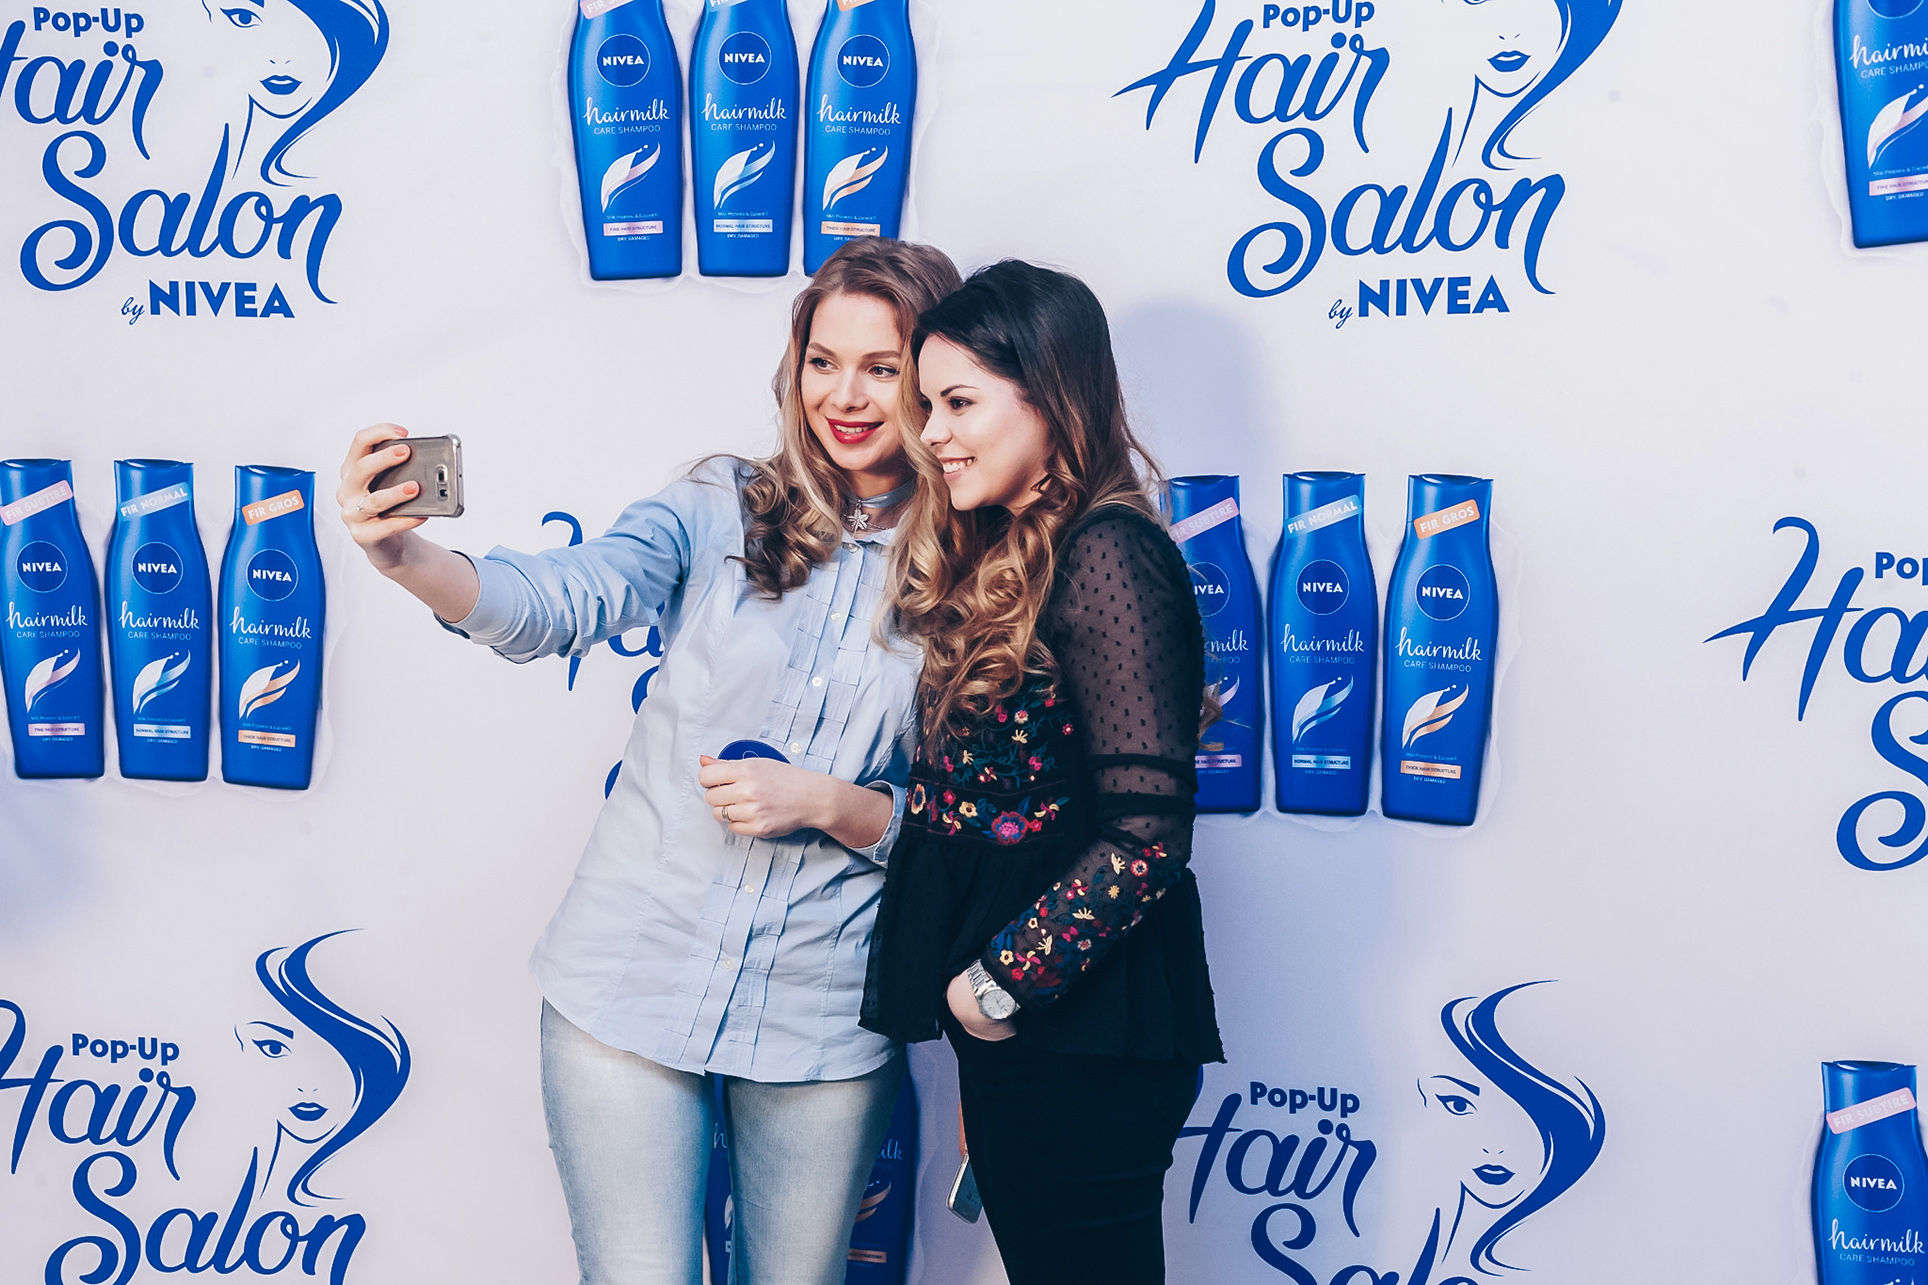 nivea pop up salon